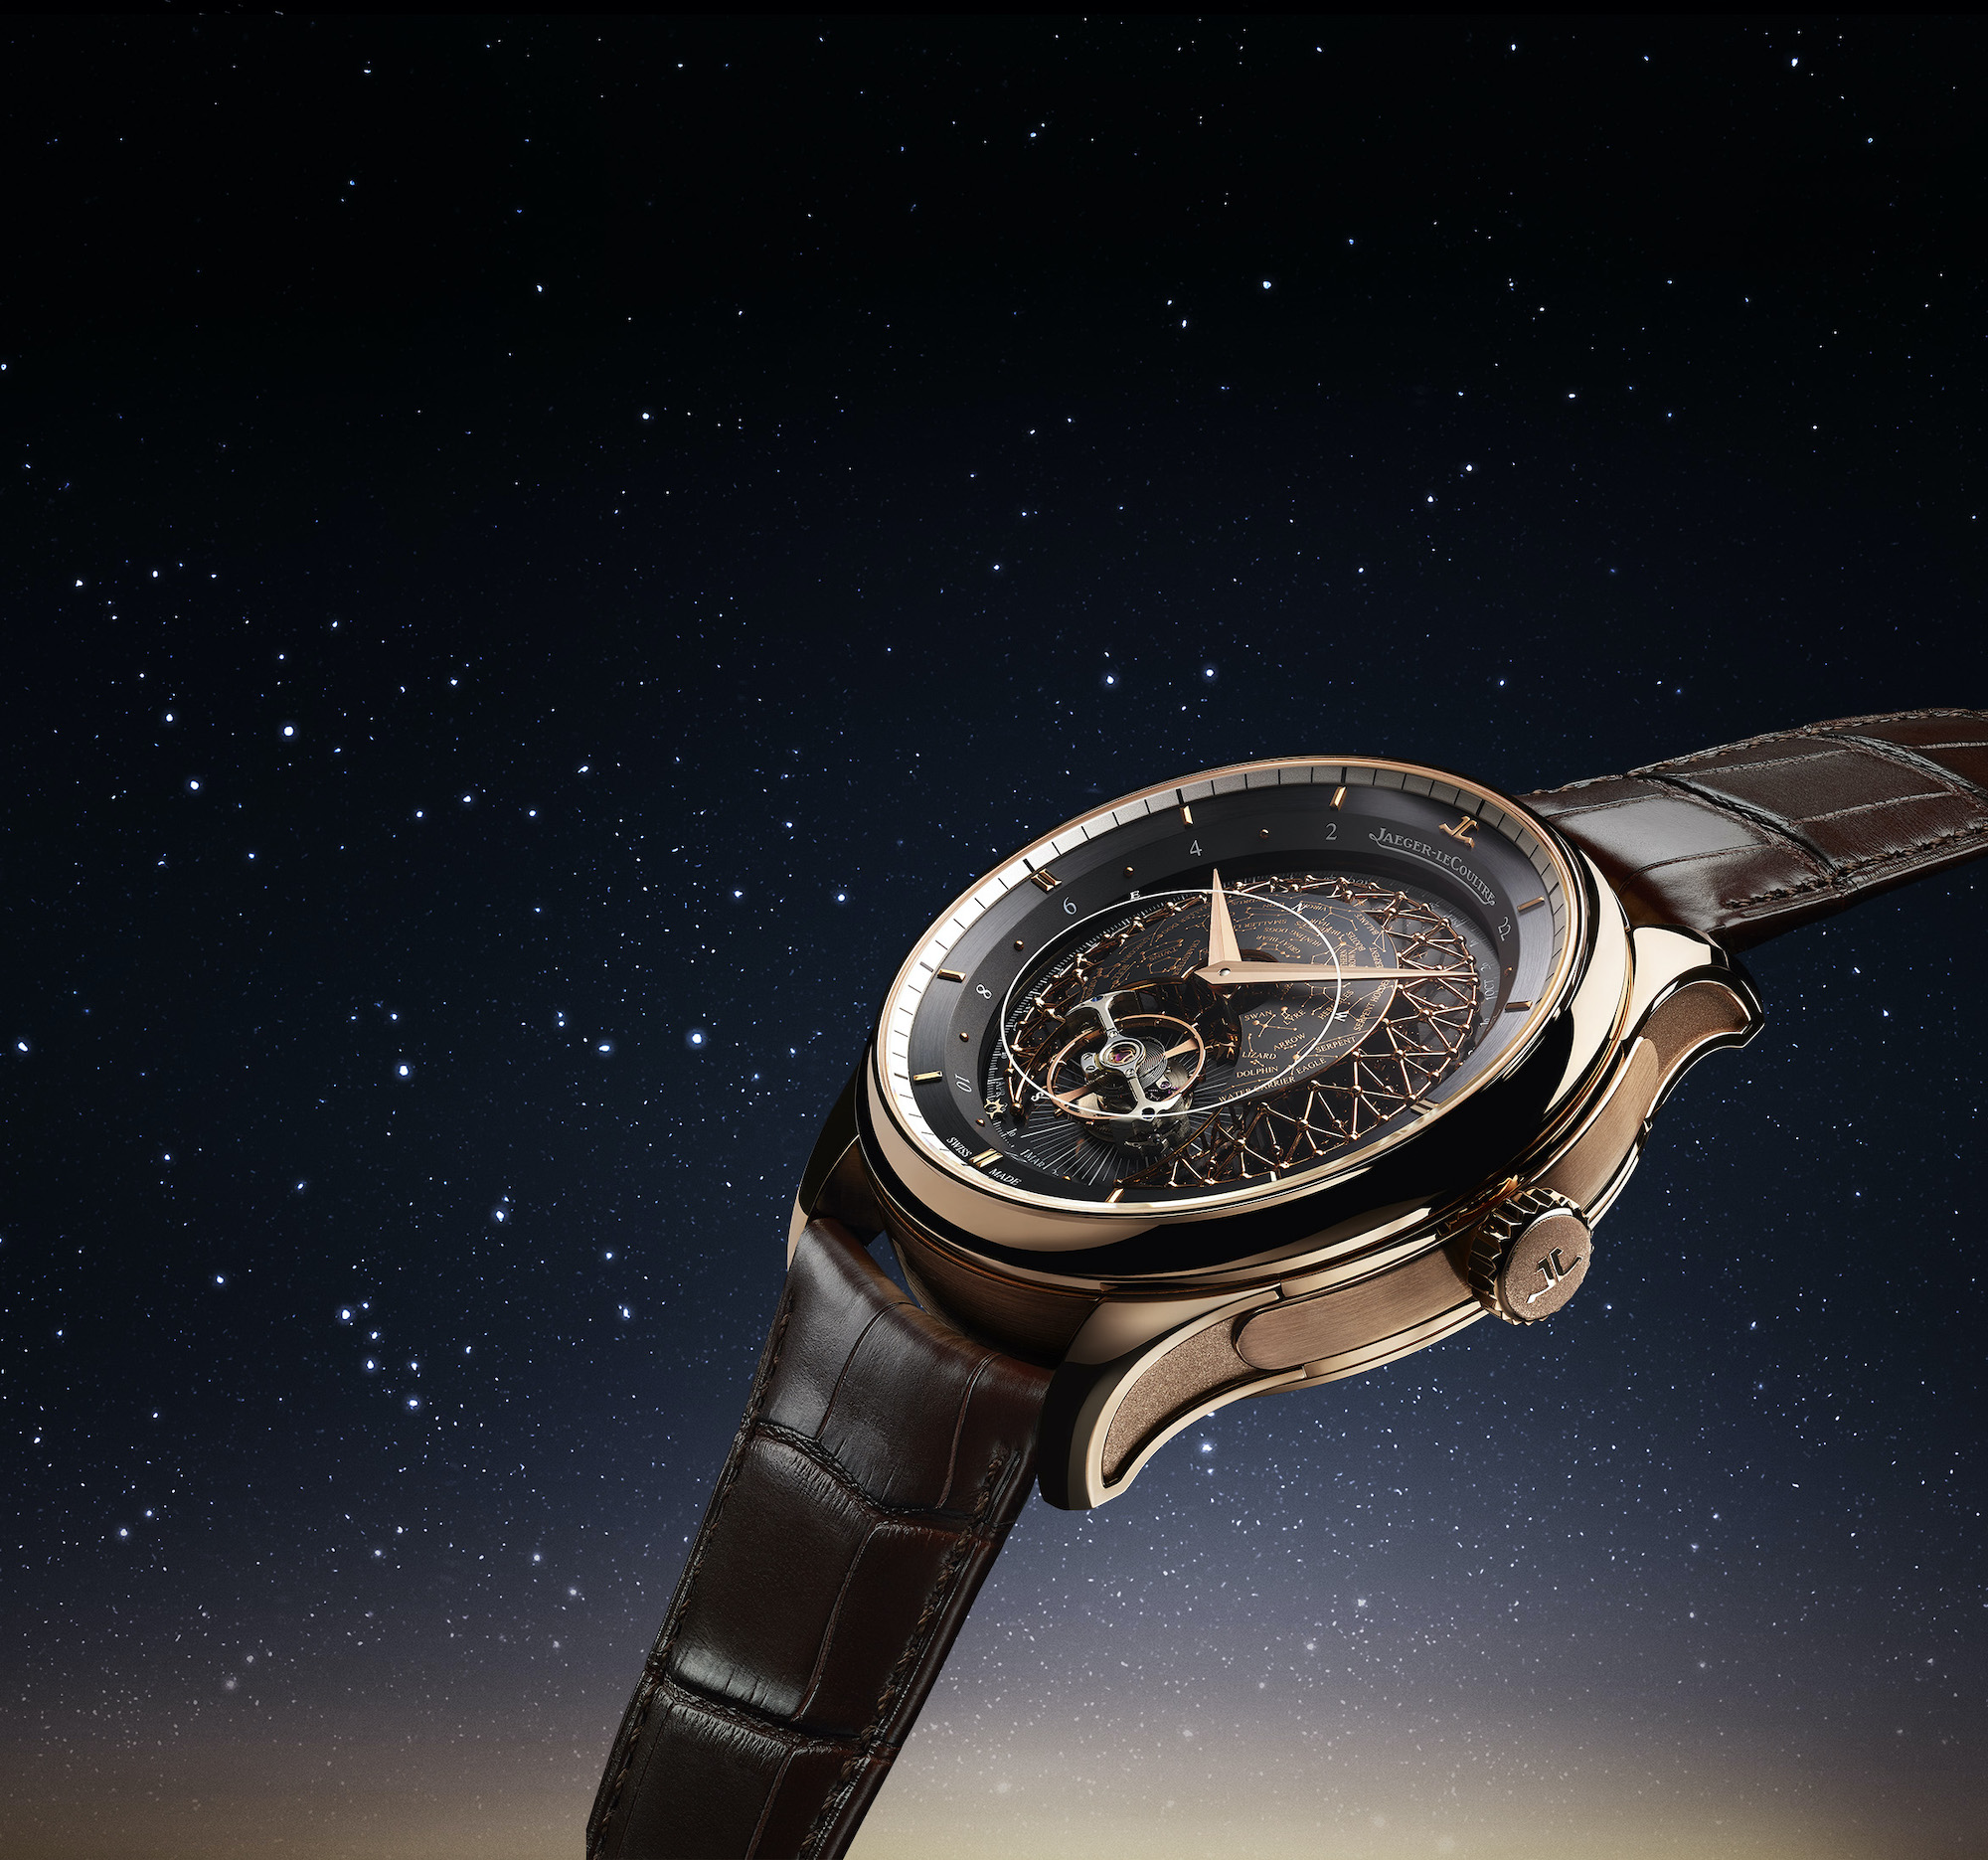 Jaeger-LeCoultre Master Grande Tradition Grande Complication Rose gold lifestyle perfil